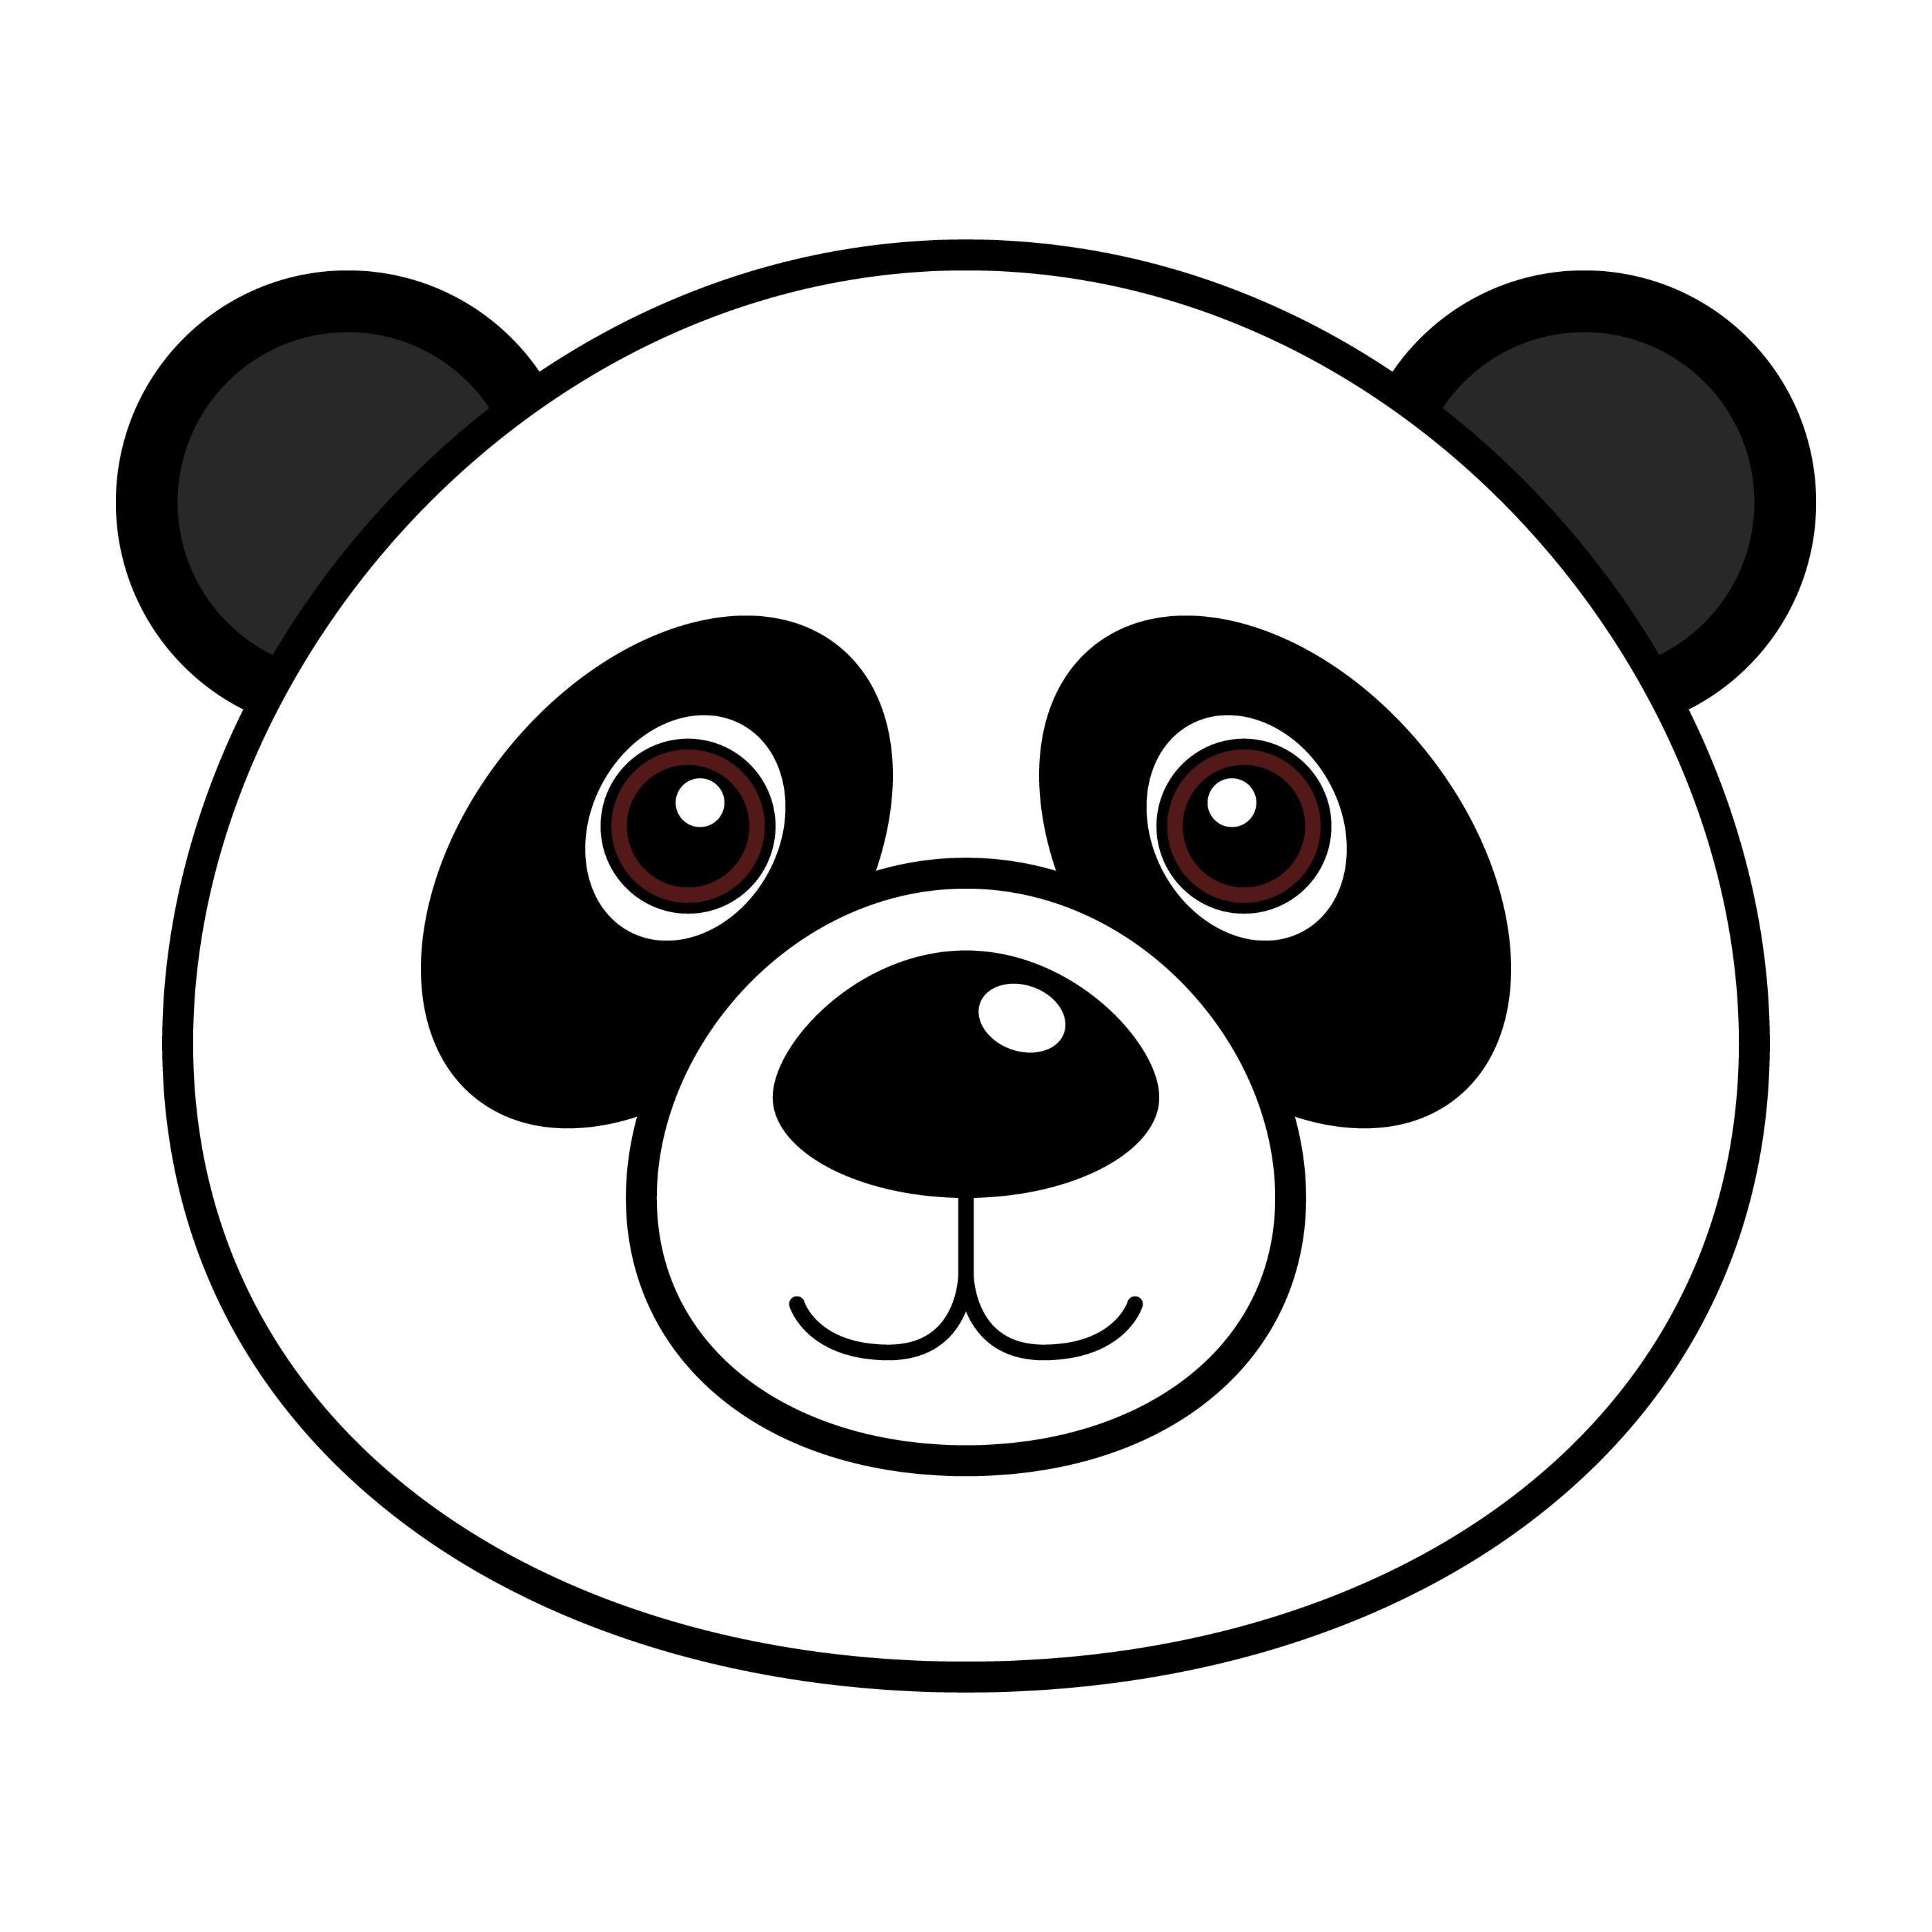 Google Panda 4 2 Is Finally Here Pandas Dibujo Dibujos Panda